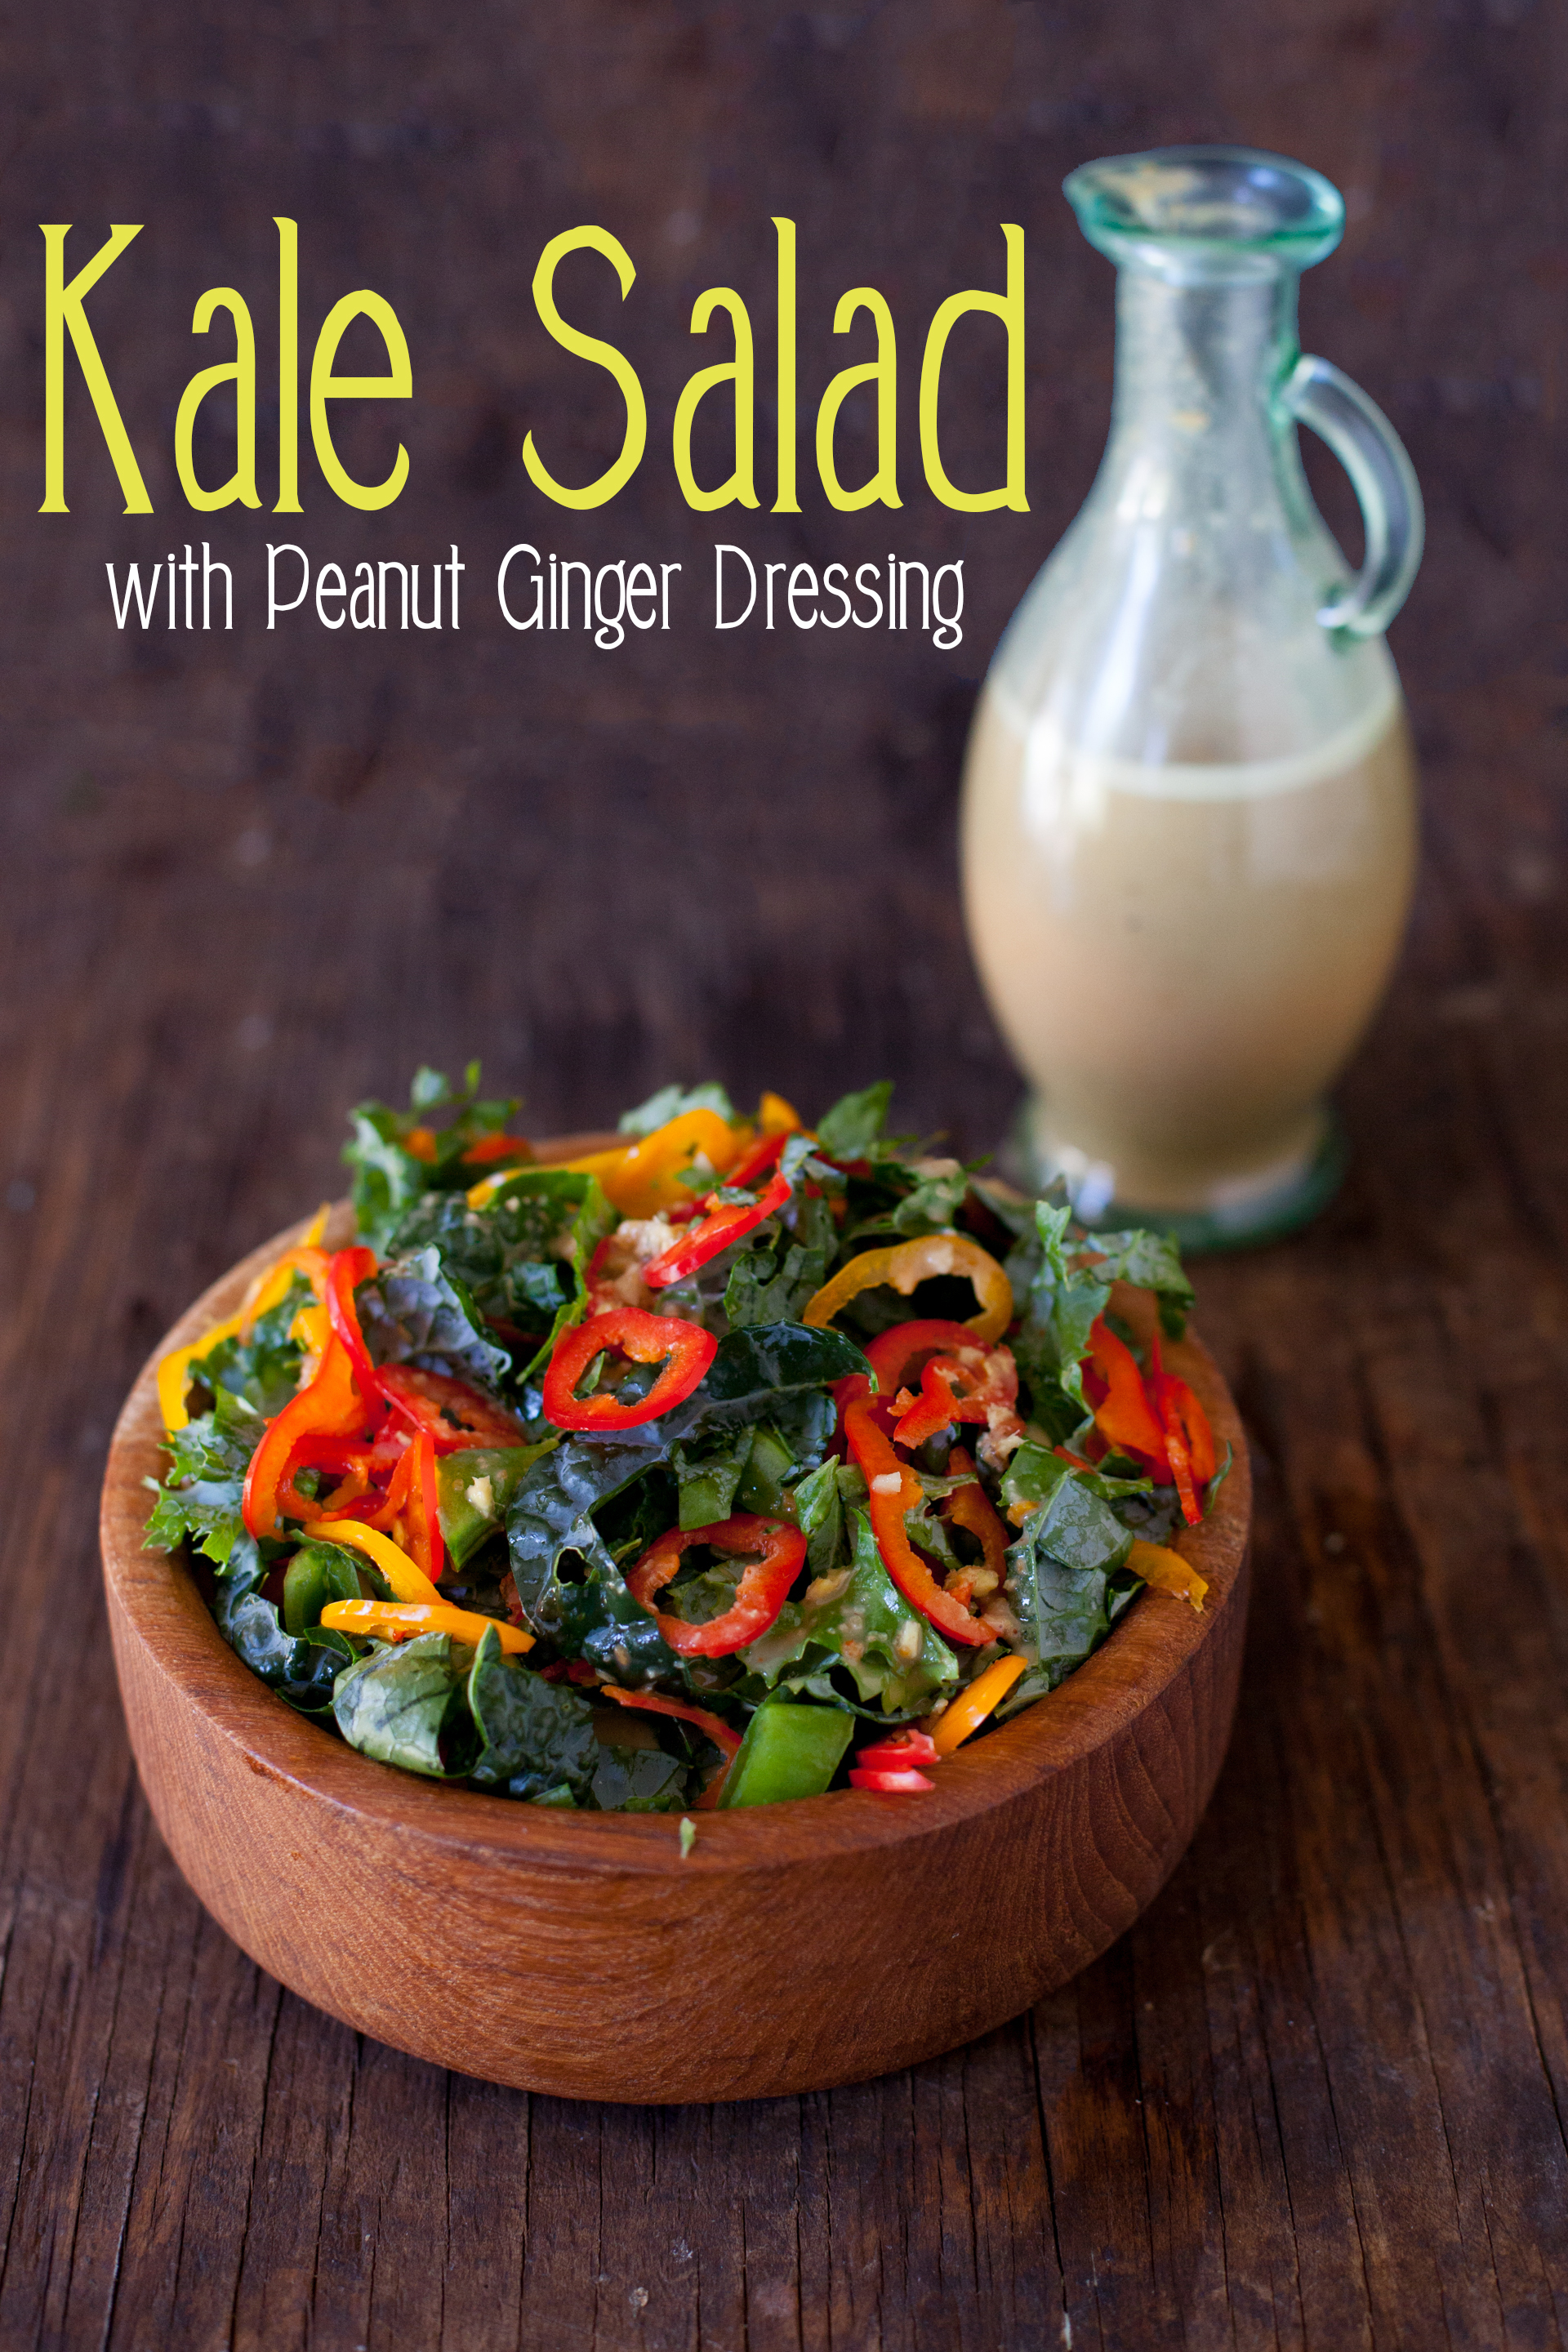 A Salad That Will Make You Crave Kale!